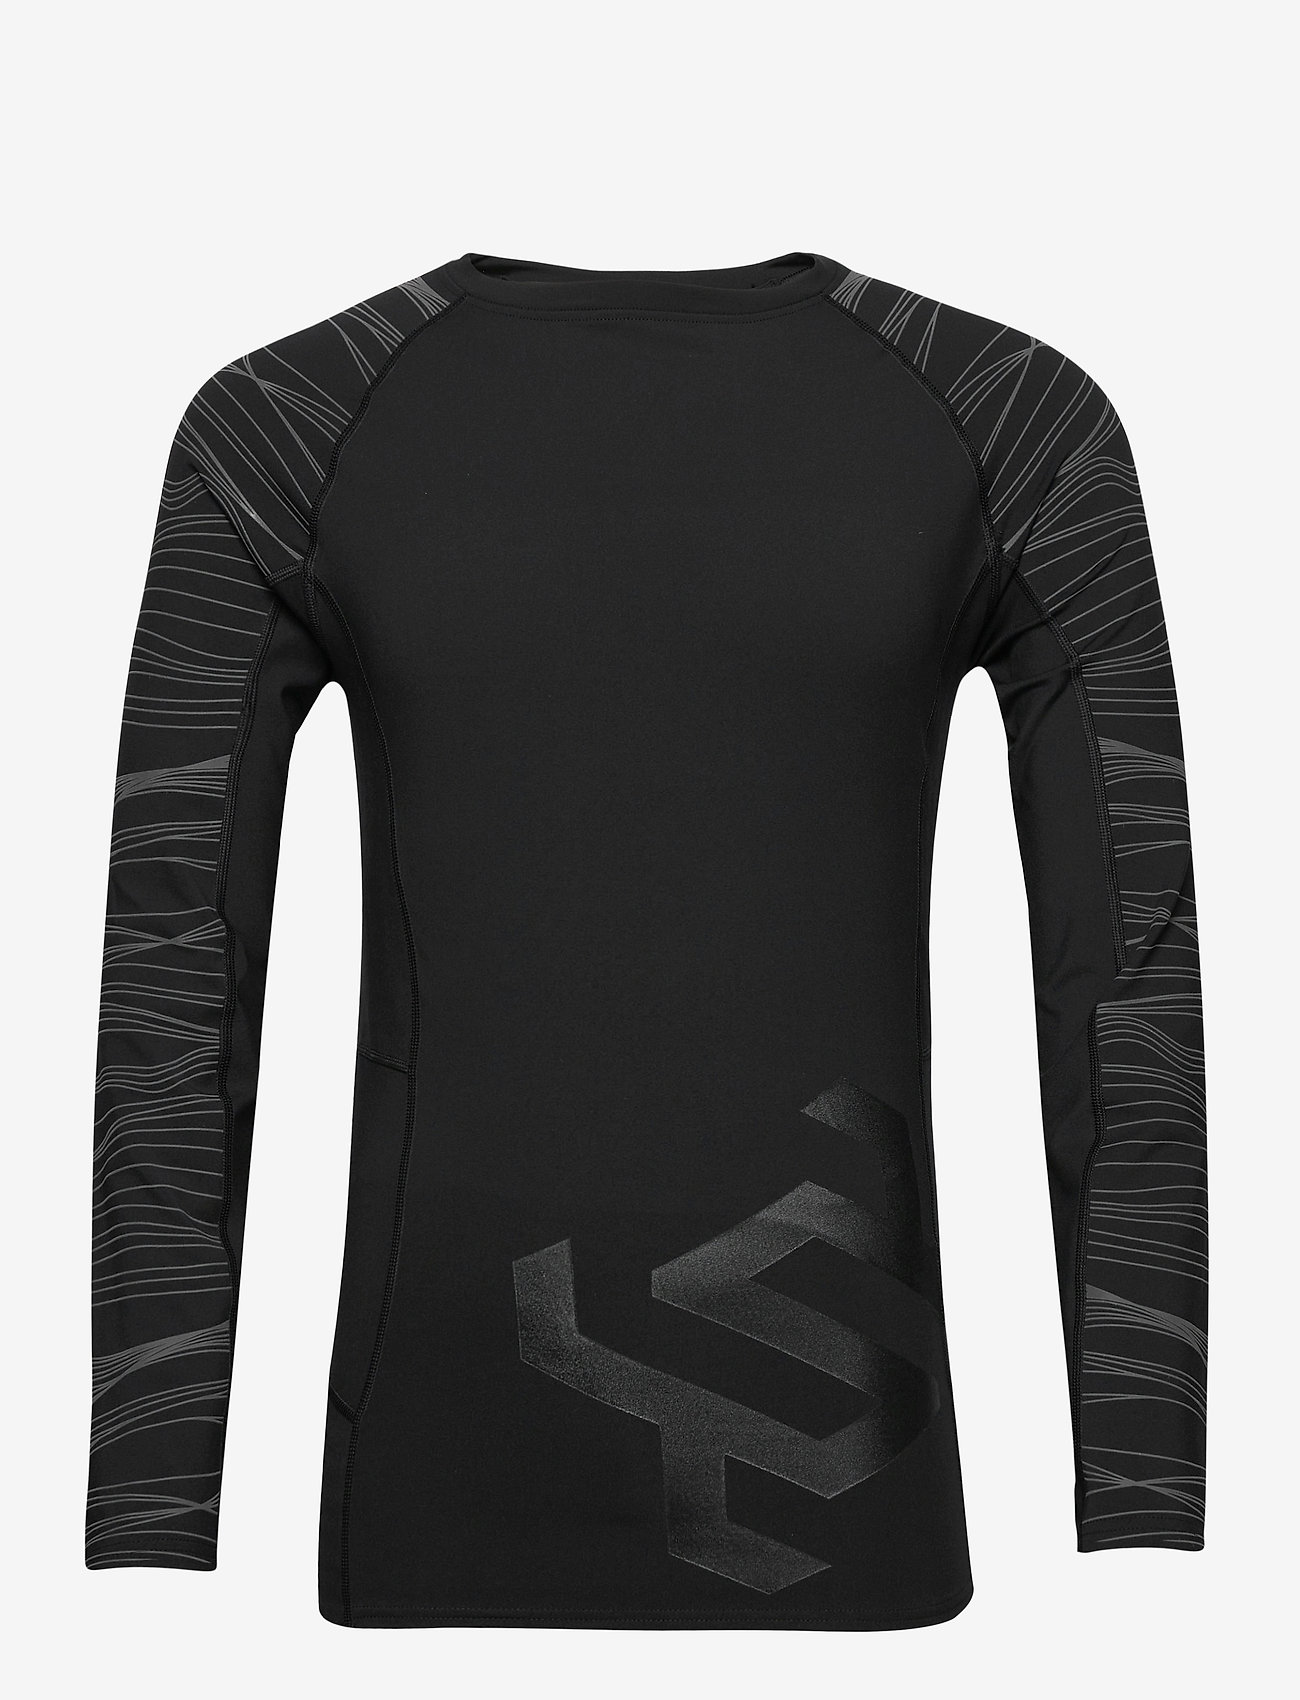 Superdry - PERFORMANCE INSULATE L/S TOP - thermo ondershirts - black - 0